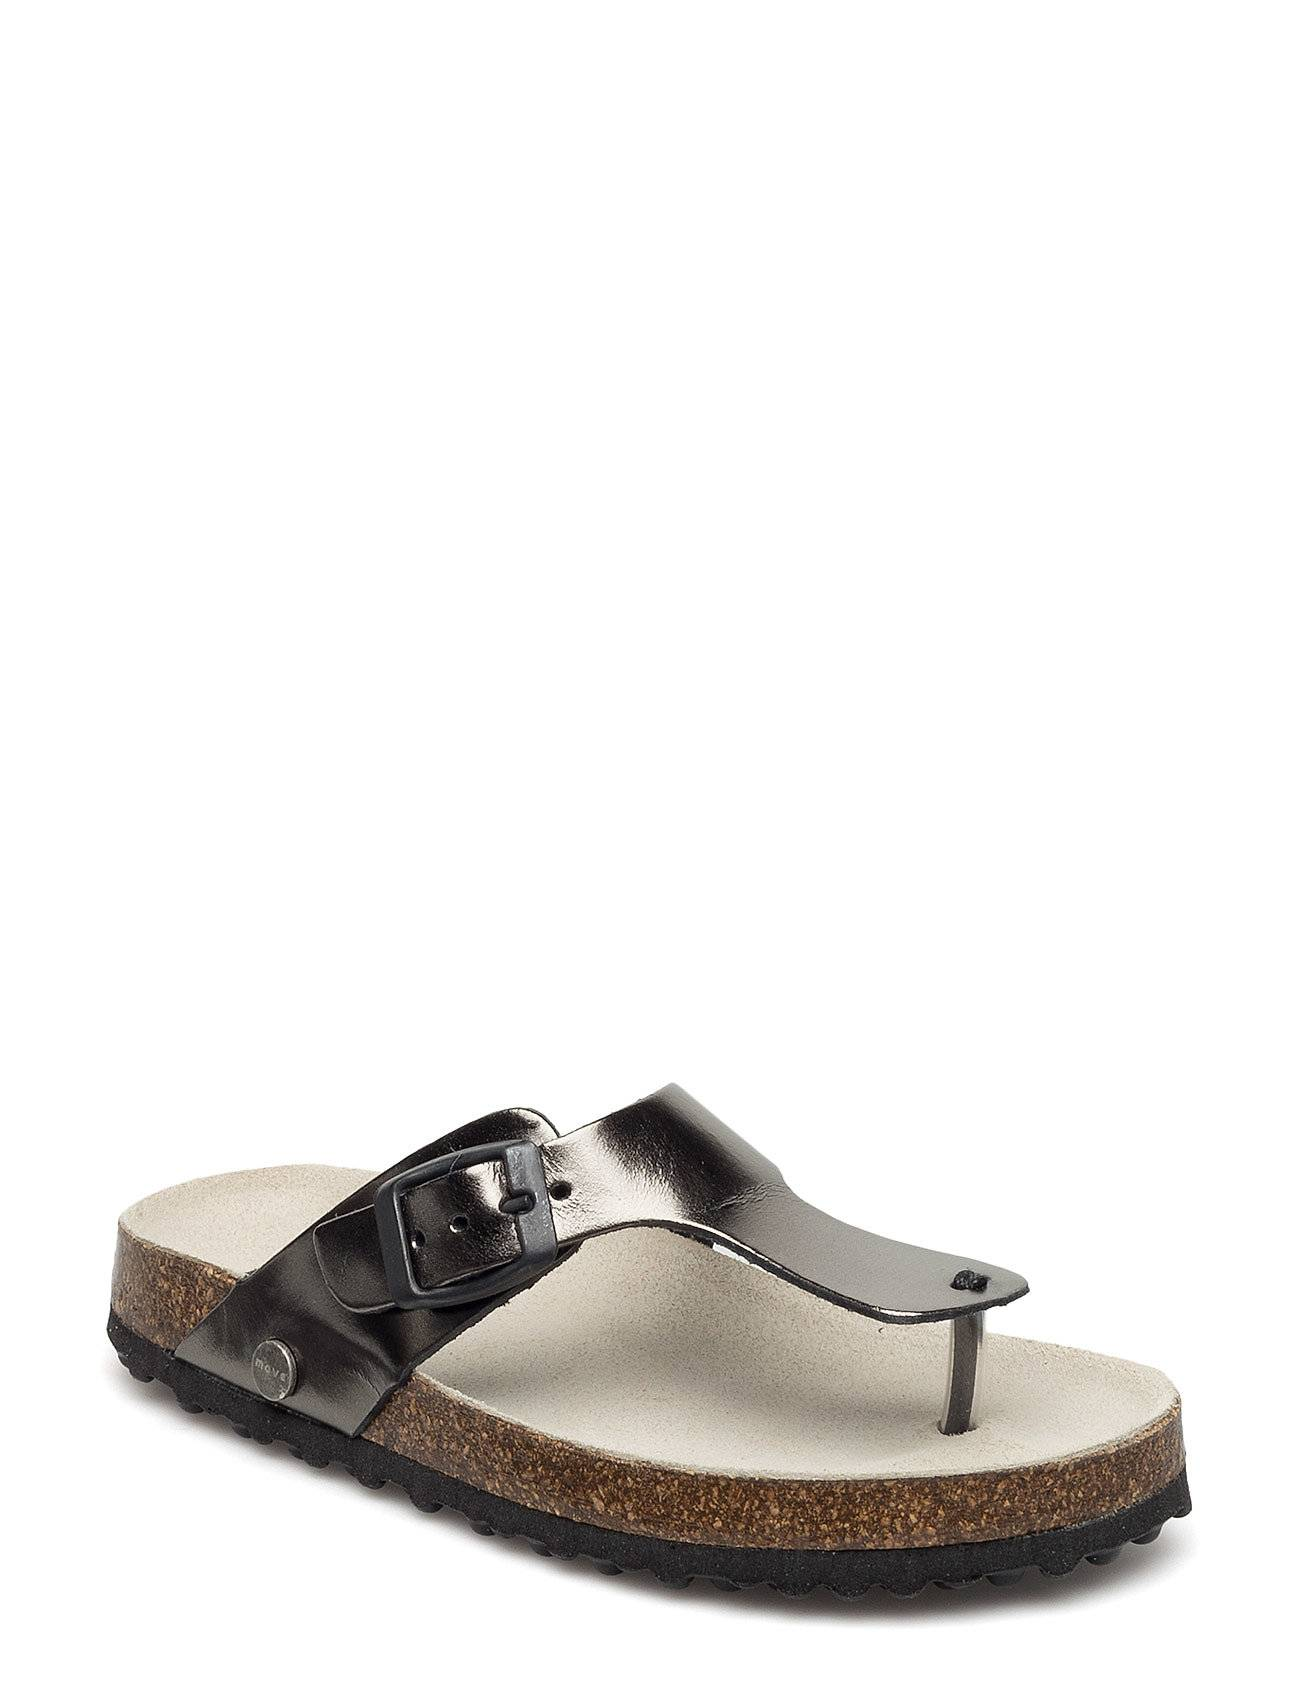 Move by Melton Girl Cork Tongue Sandal